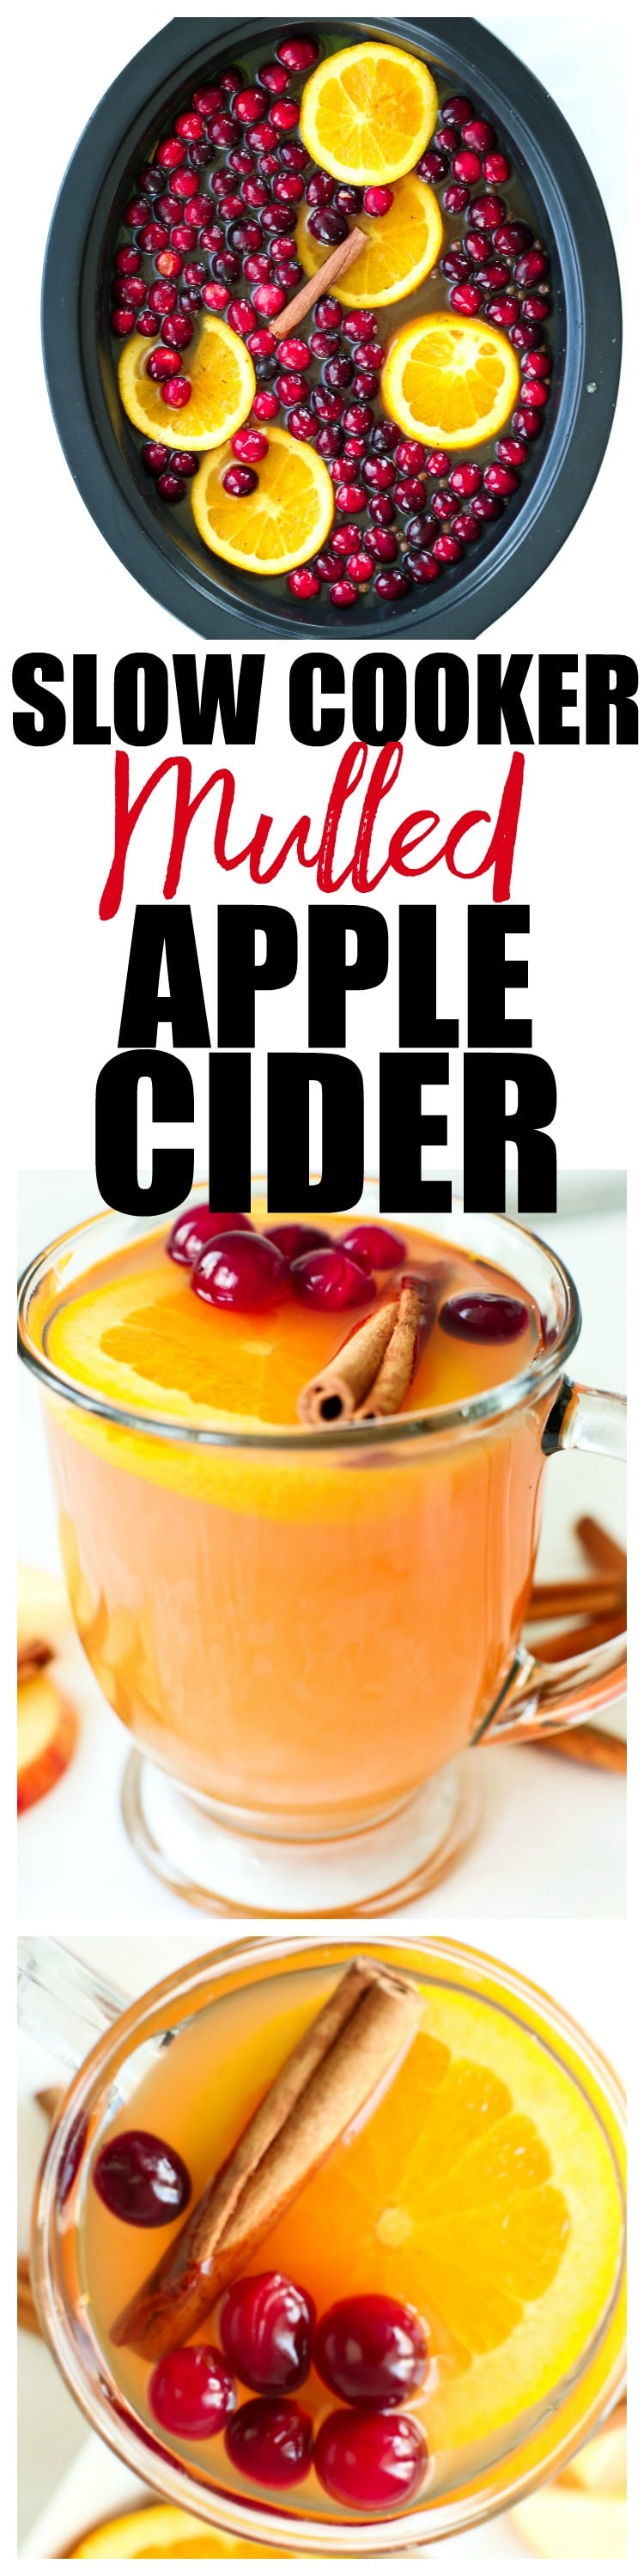 Mulled Hot Apple cider in the Crock-Pot slow cooker recipe! This is perfect for Thanksgiving, Christmas, or any holiday gathering!